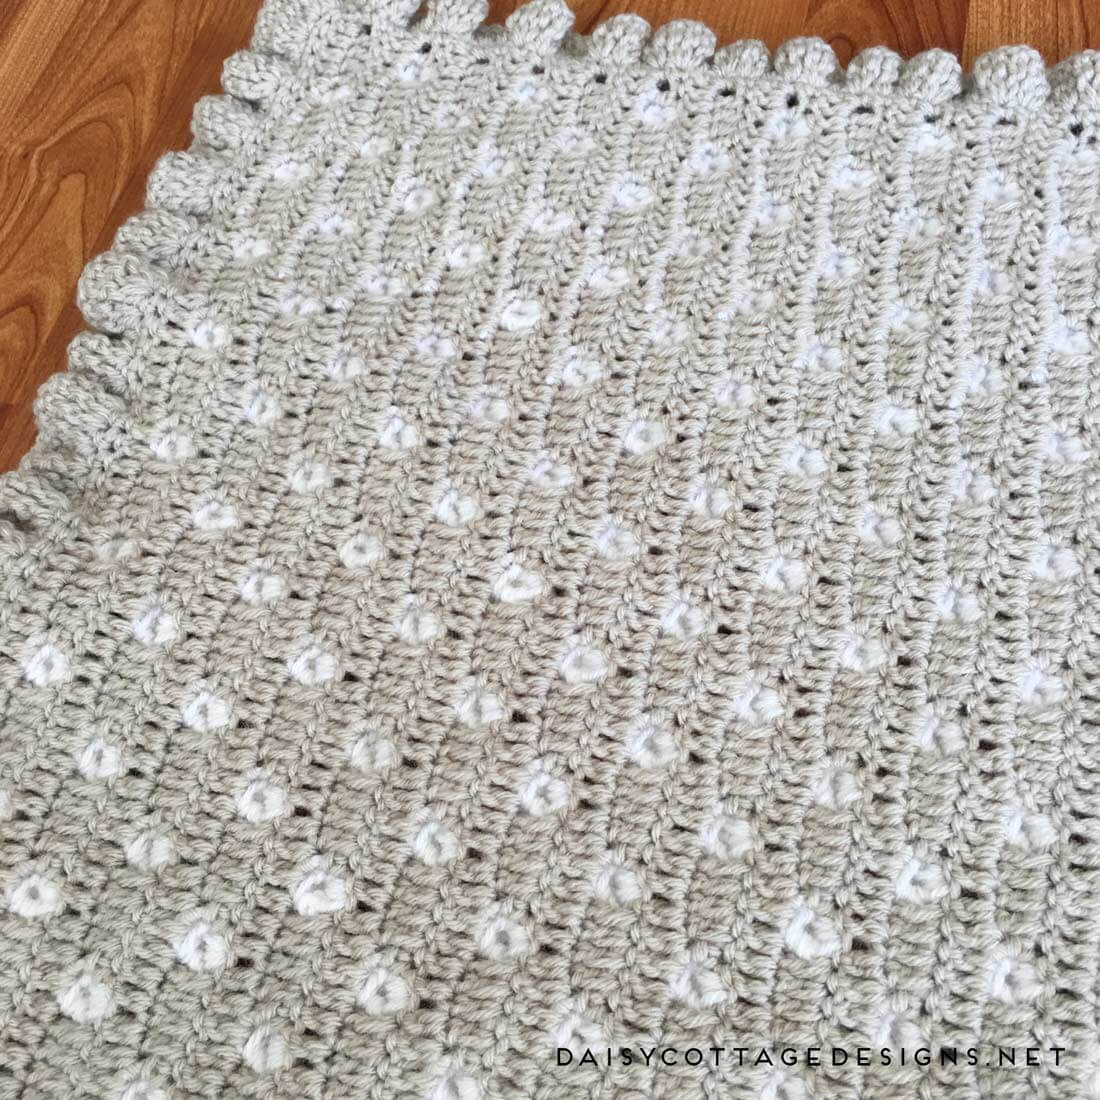 Awesome Crochet Baby Blanket Pattern From Daisy Cottage Designs Baby Blankets to Crochet Of Amazing 46 Images Baby Blankets to Crochet